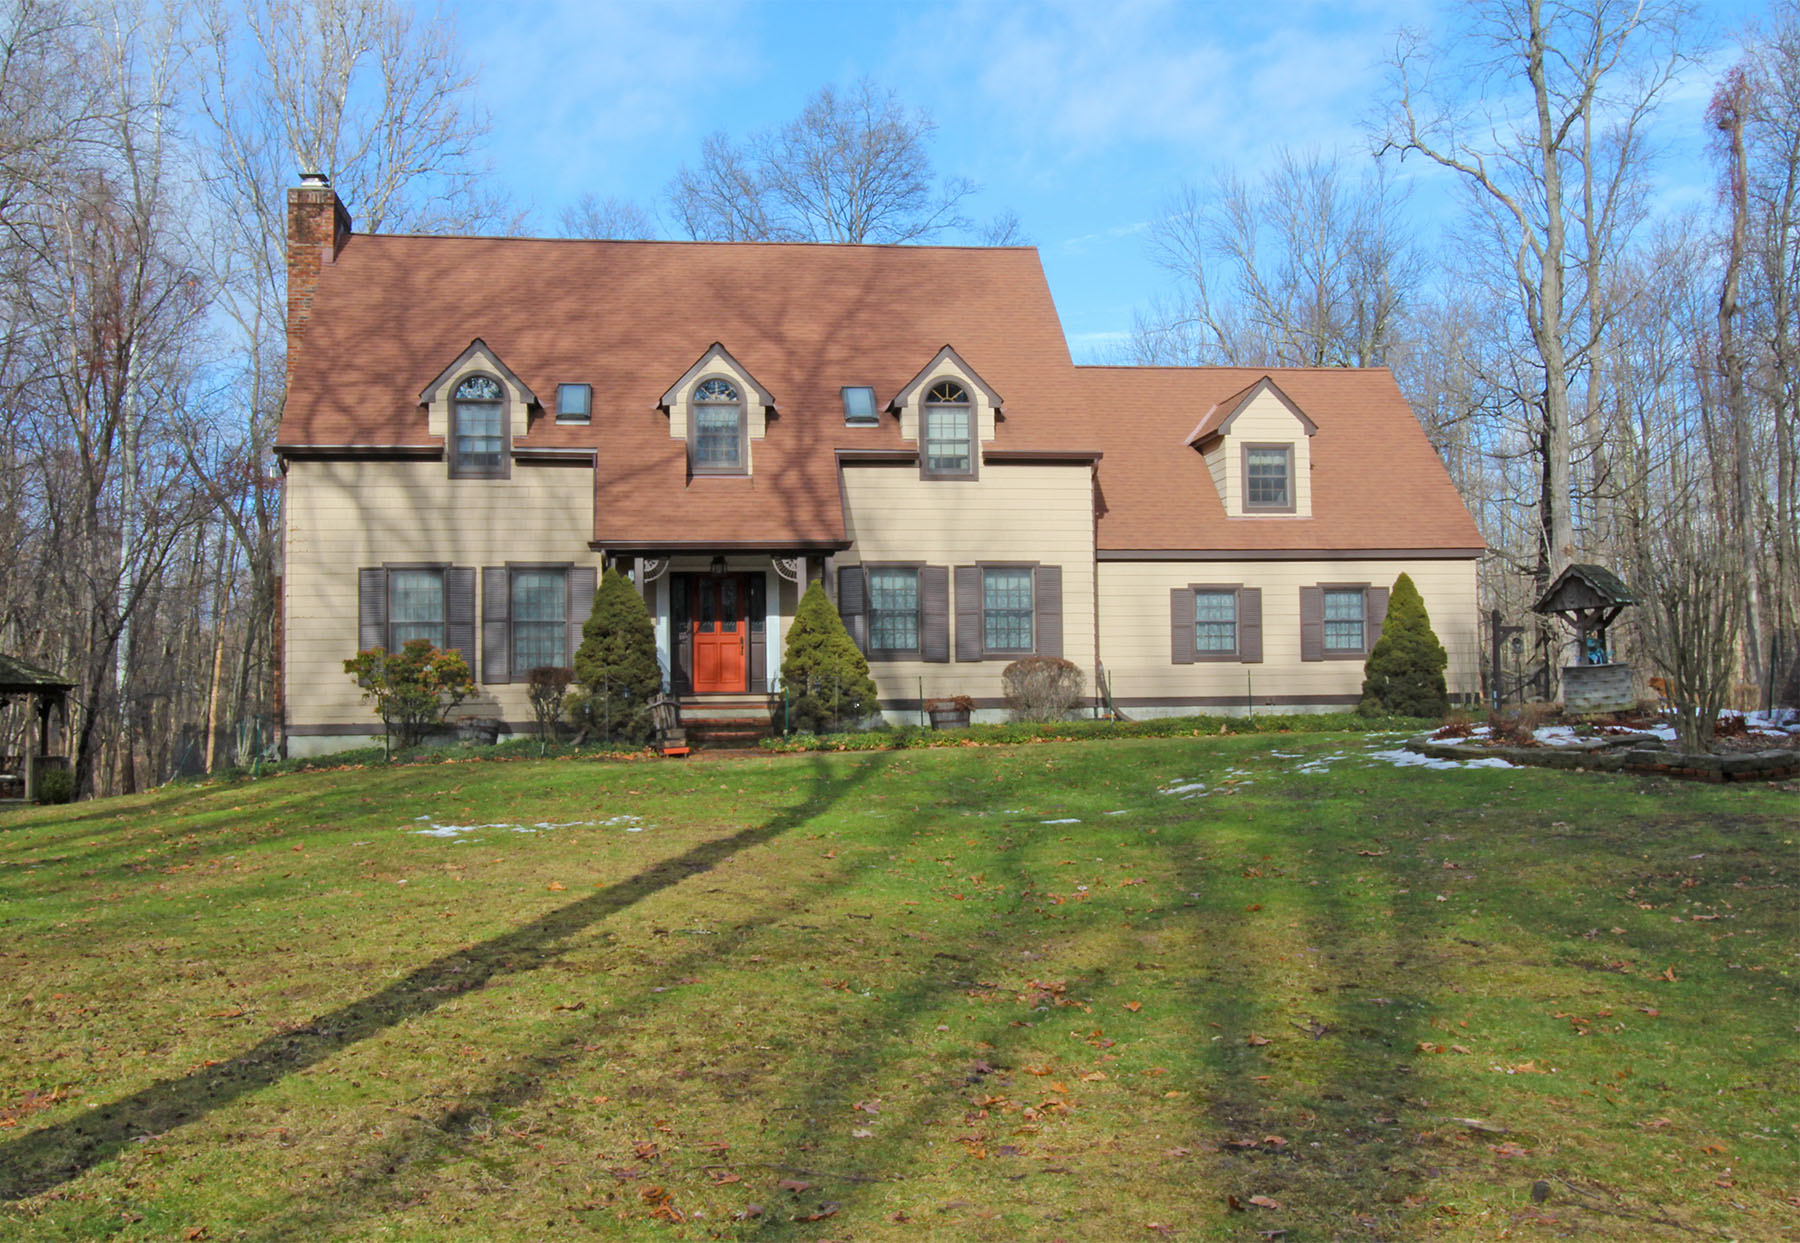 Single Family Home for Sale at Peacock Road 5 Peacock Road Rhinebeck, New York 12572 United States